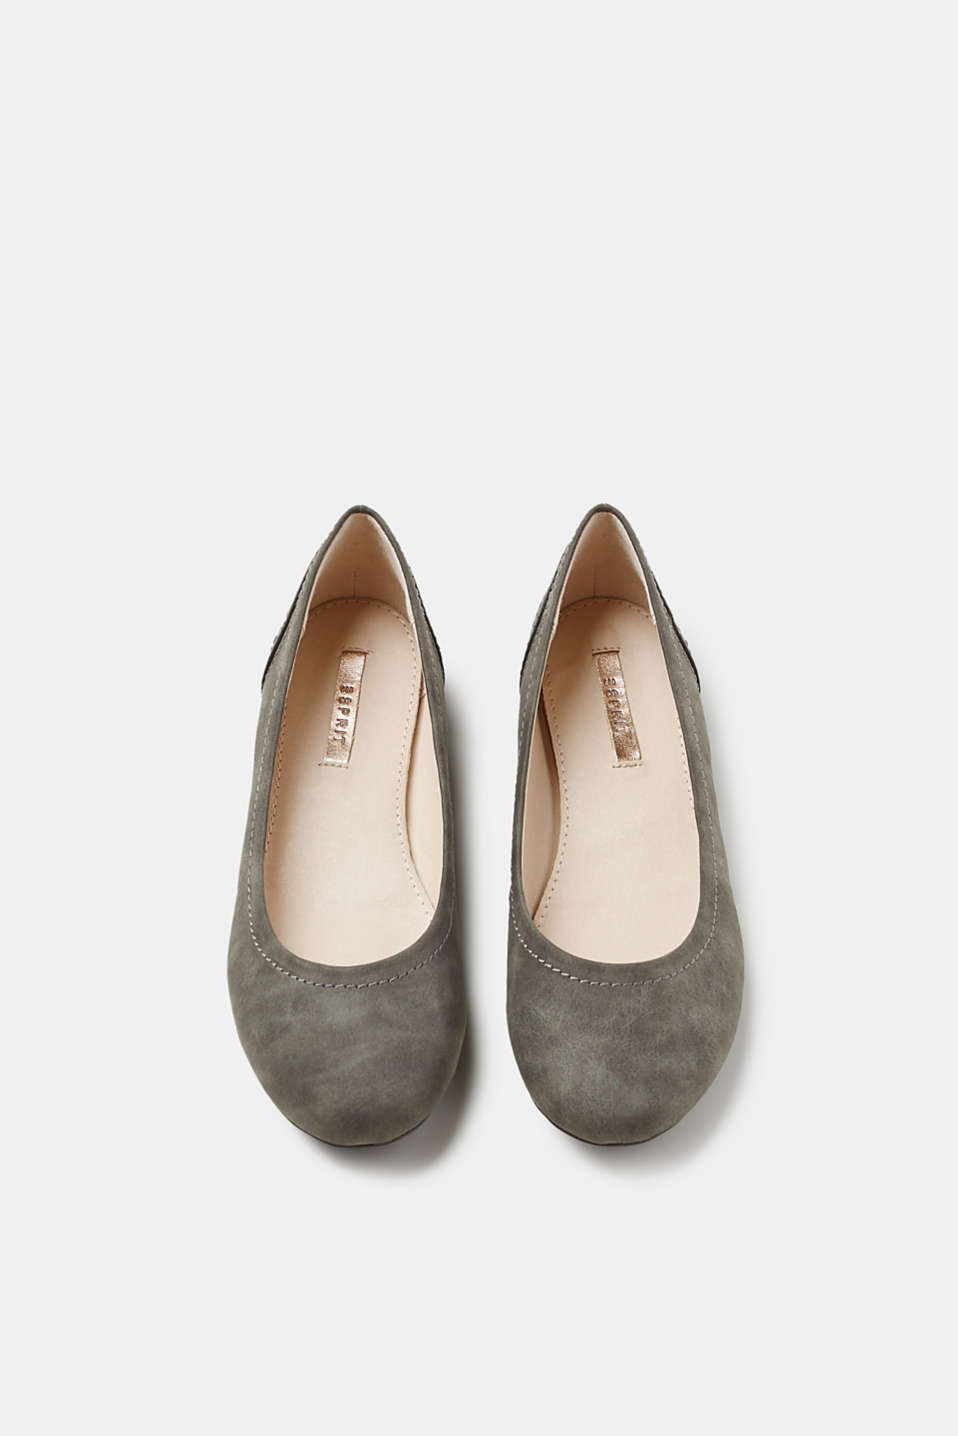 Rustic faux leather ballerinas